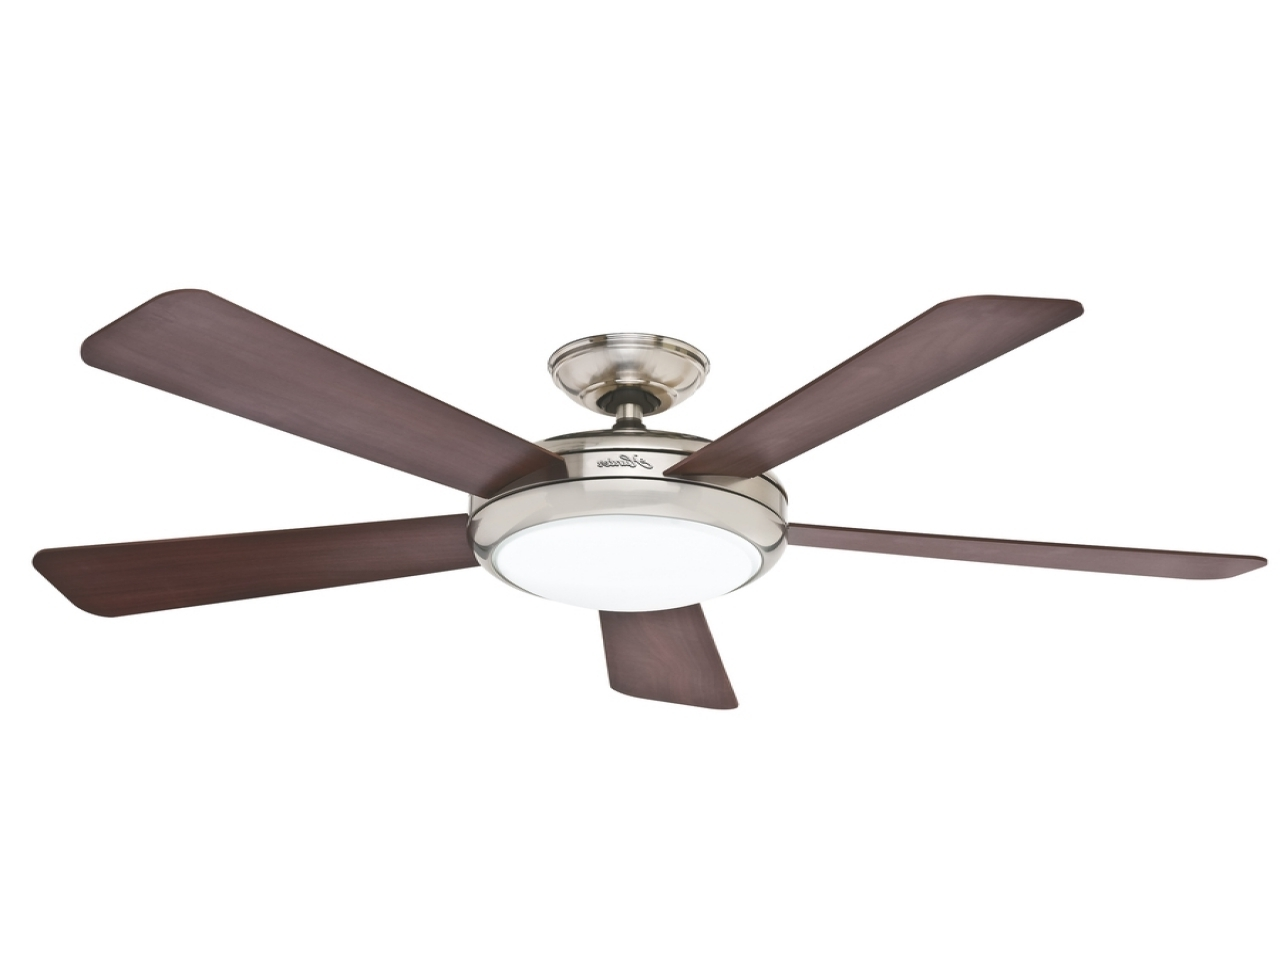 Most Current Lighting Design Ideas: Low Hugger Flush Mount Ceiling Fans With With Regard To Low Profile Outdoor Ceiling Fans With Lights (View 15 of 20)